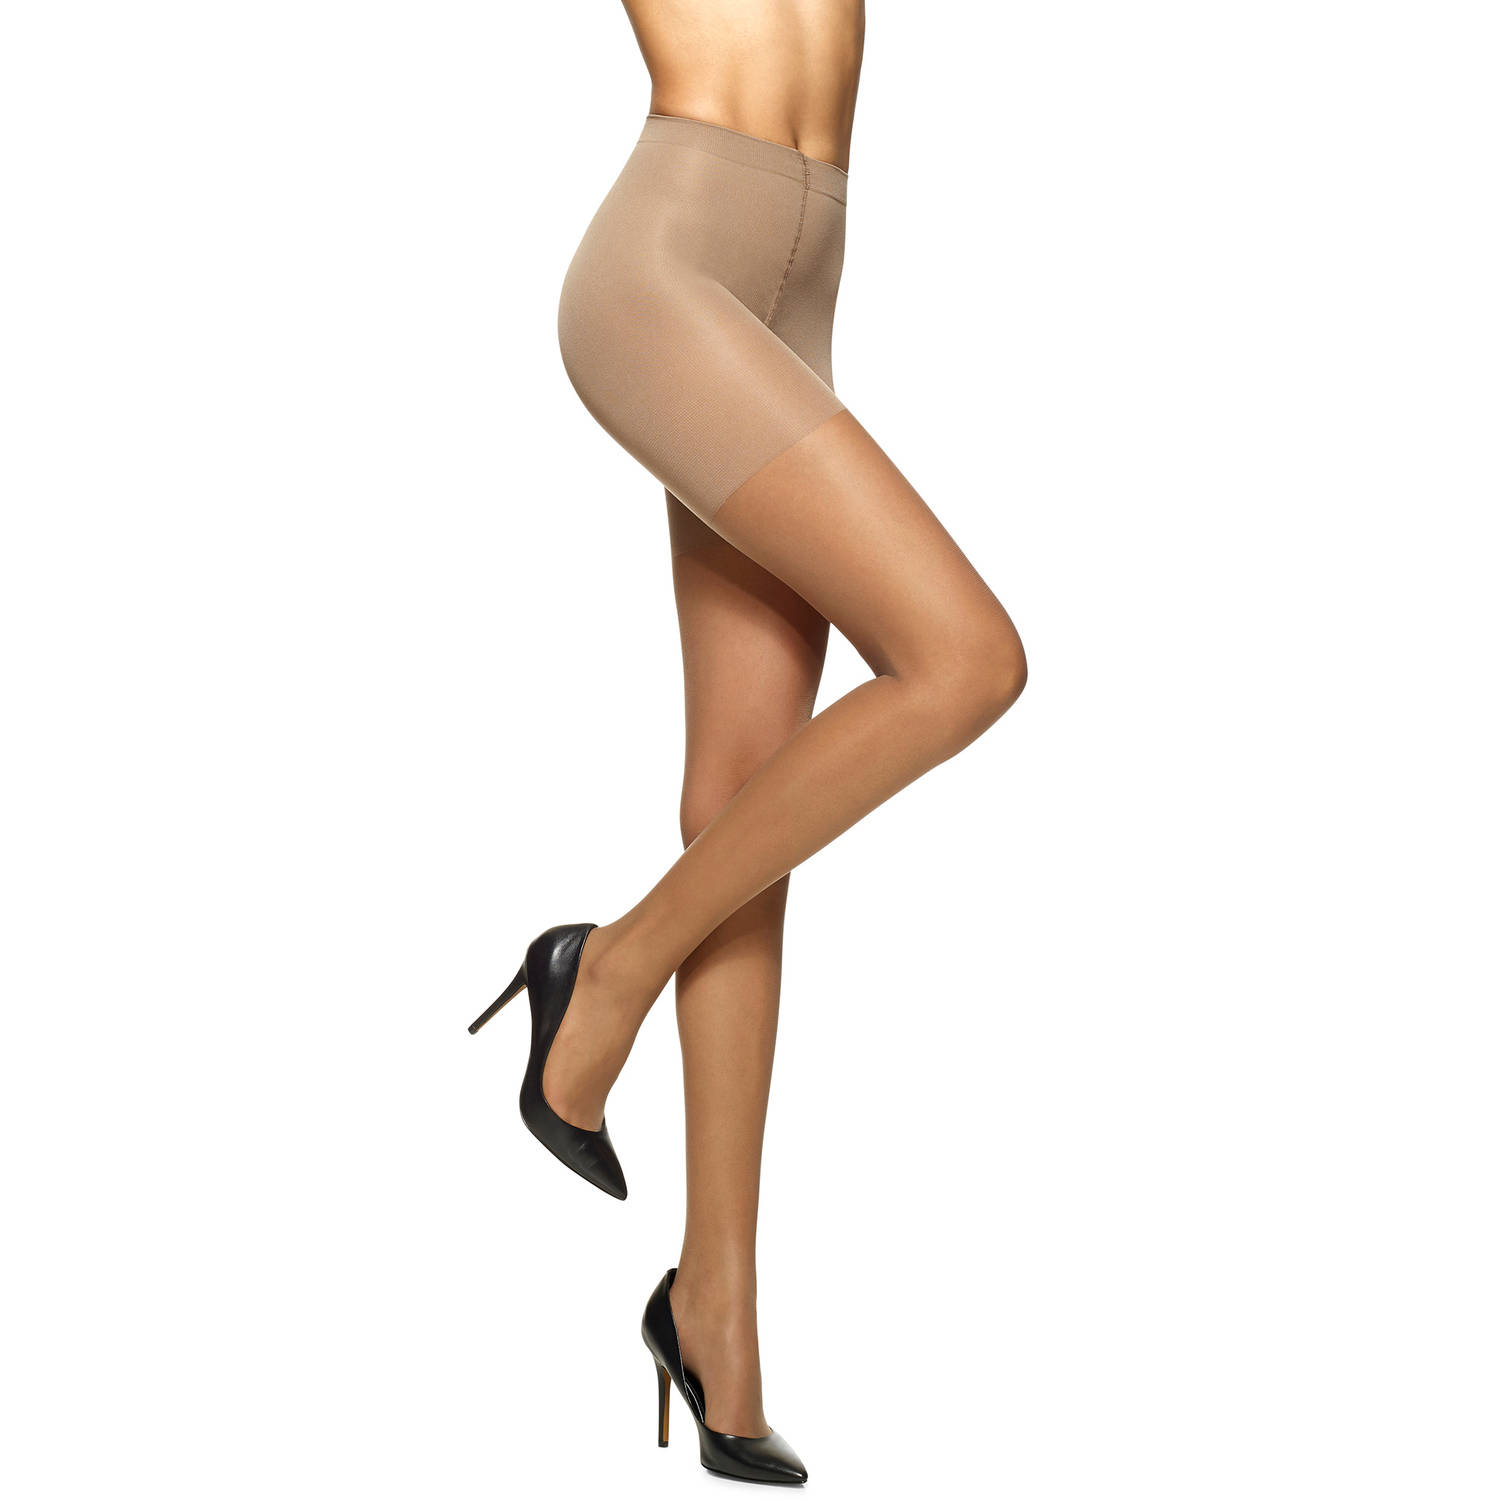 No nonsense low rise pantyhose